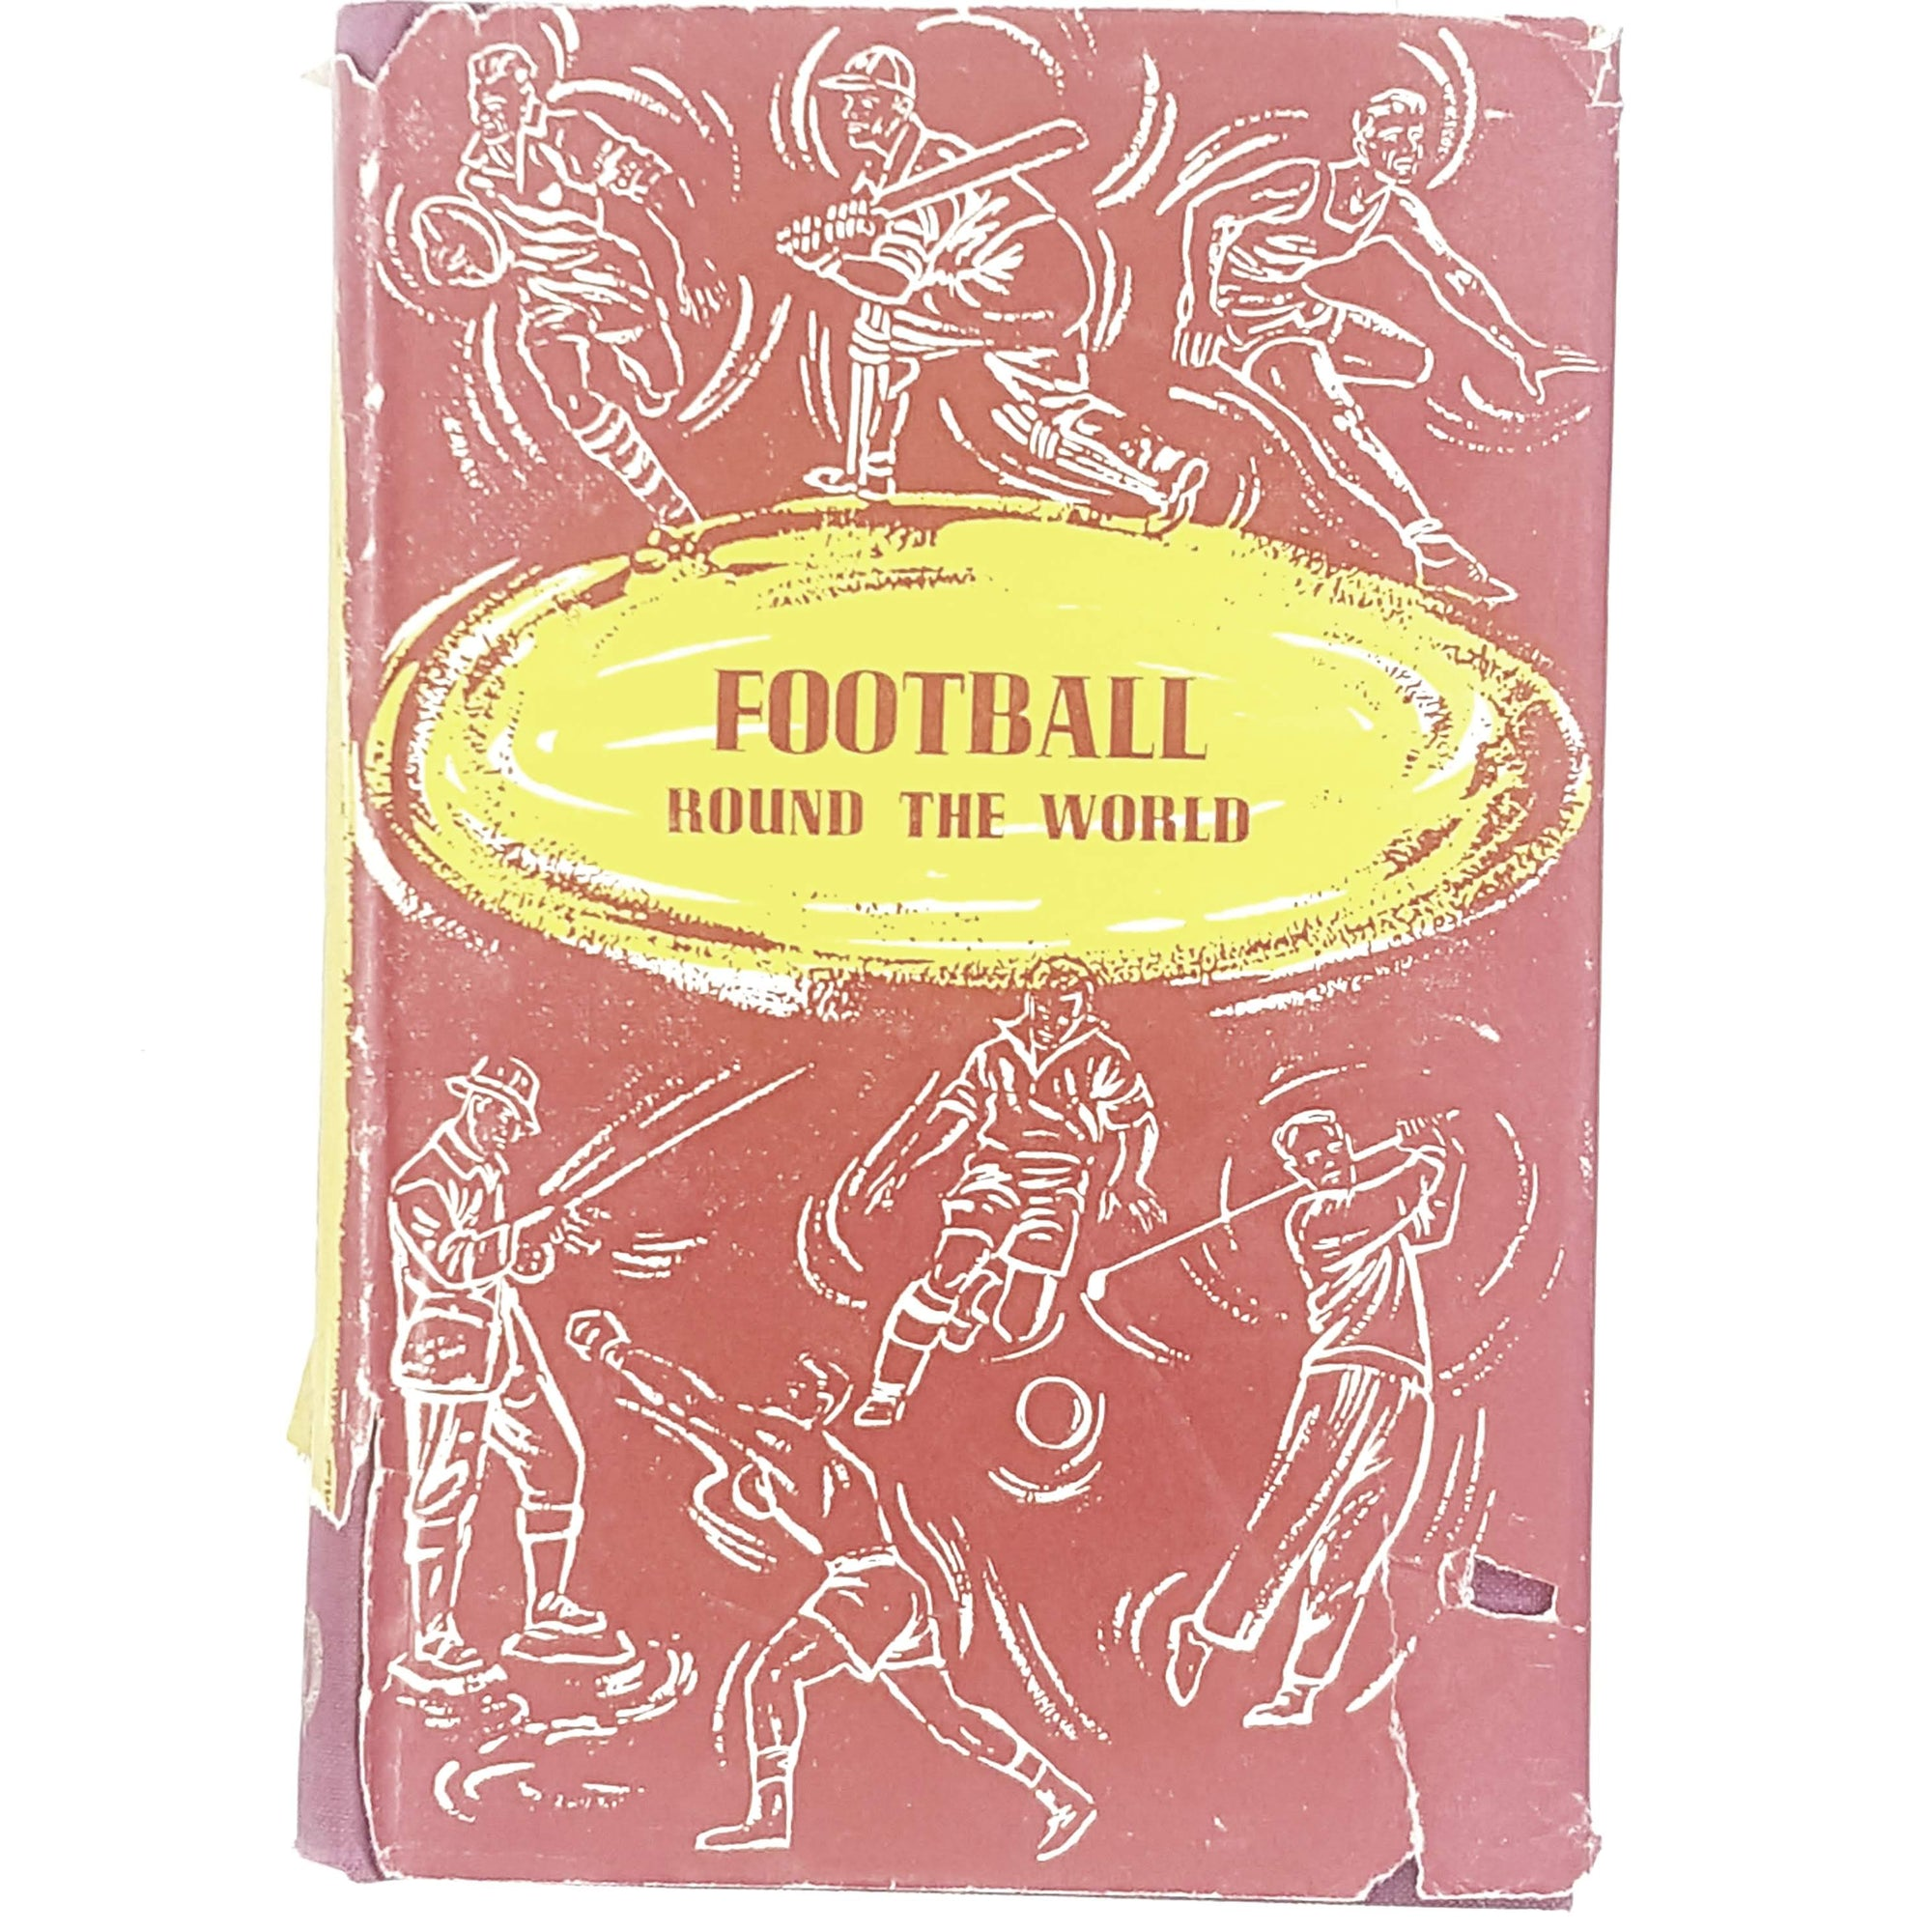 First Edition Football Around the World 1955